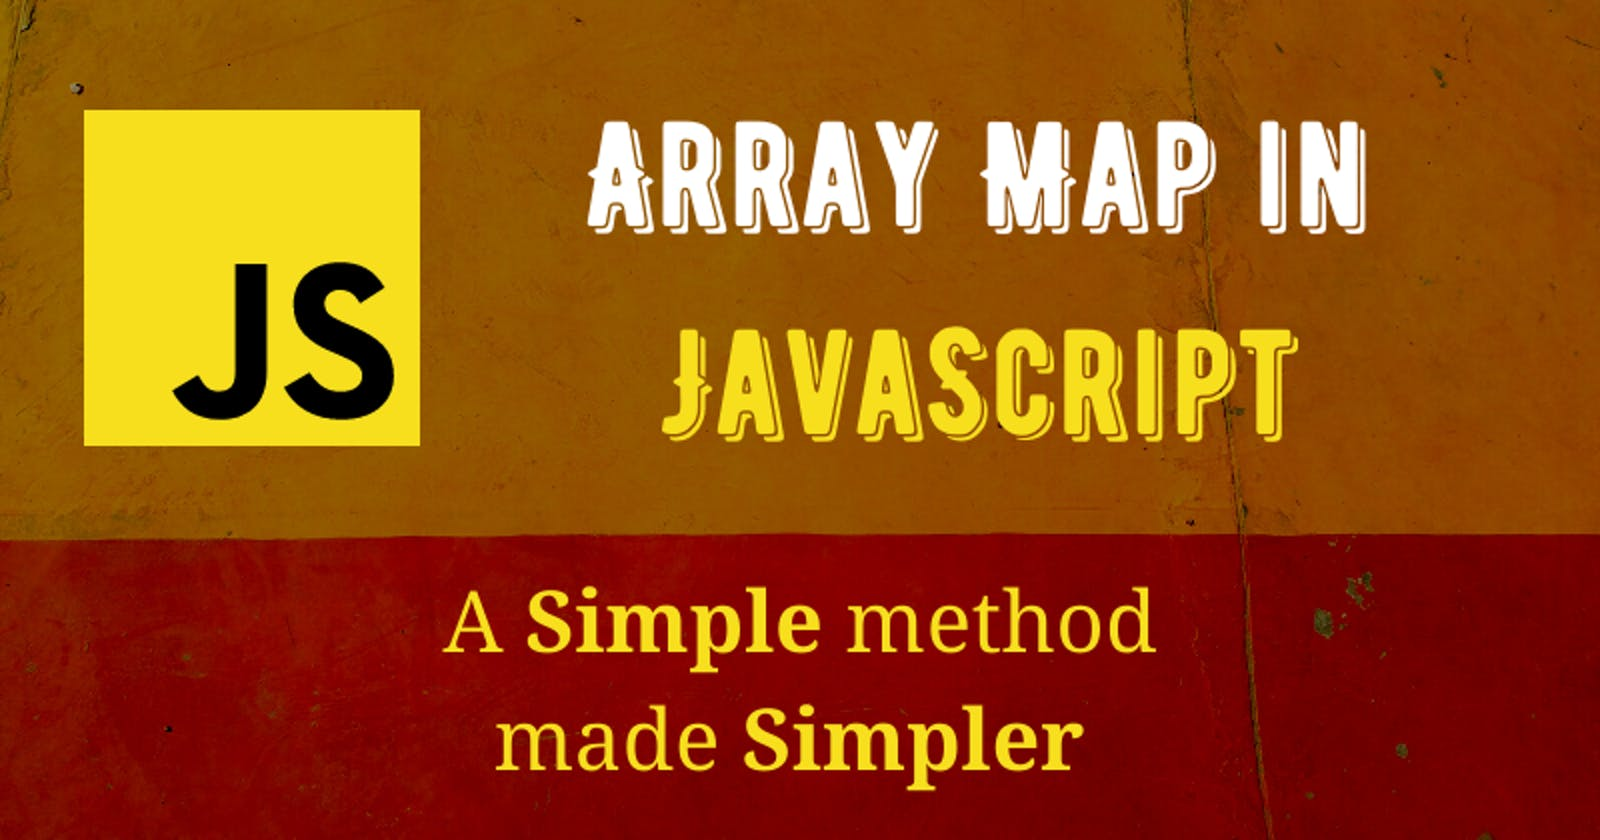 Array Map in JavaScript. A simple method made simpler